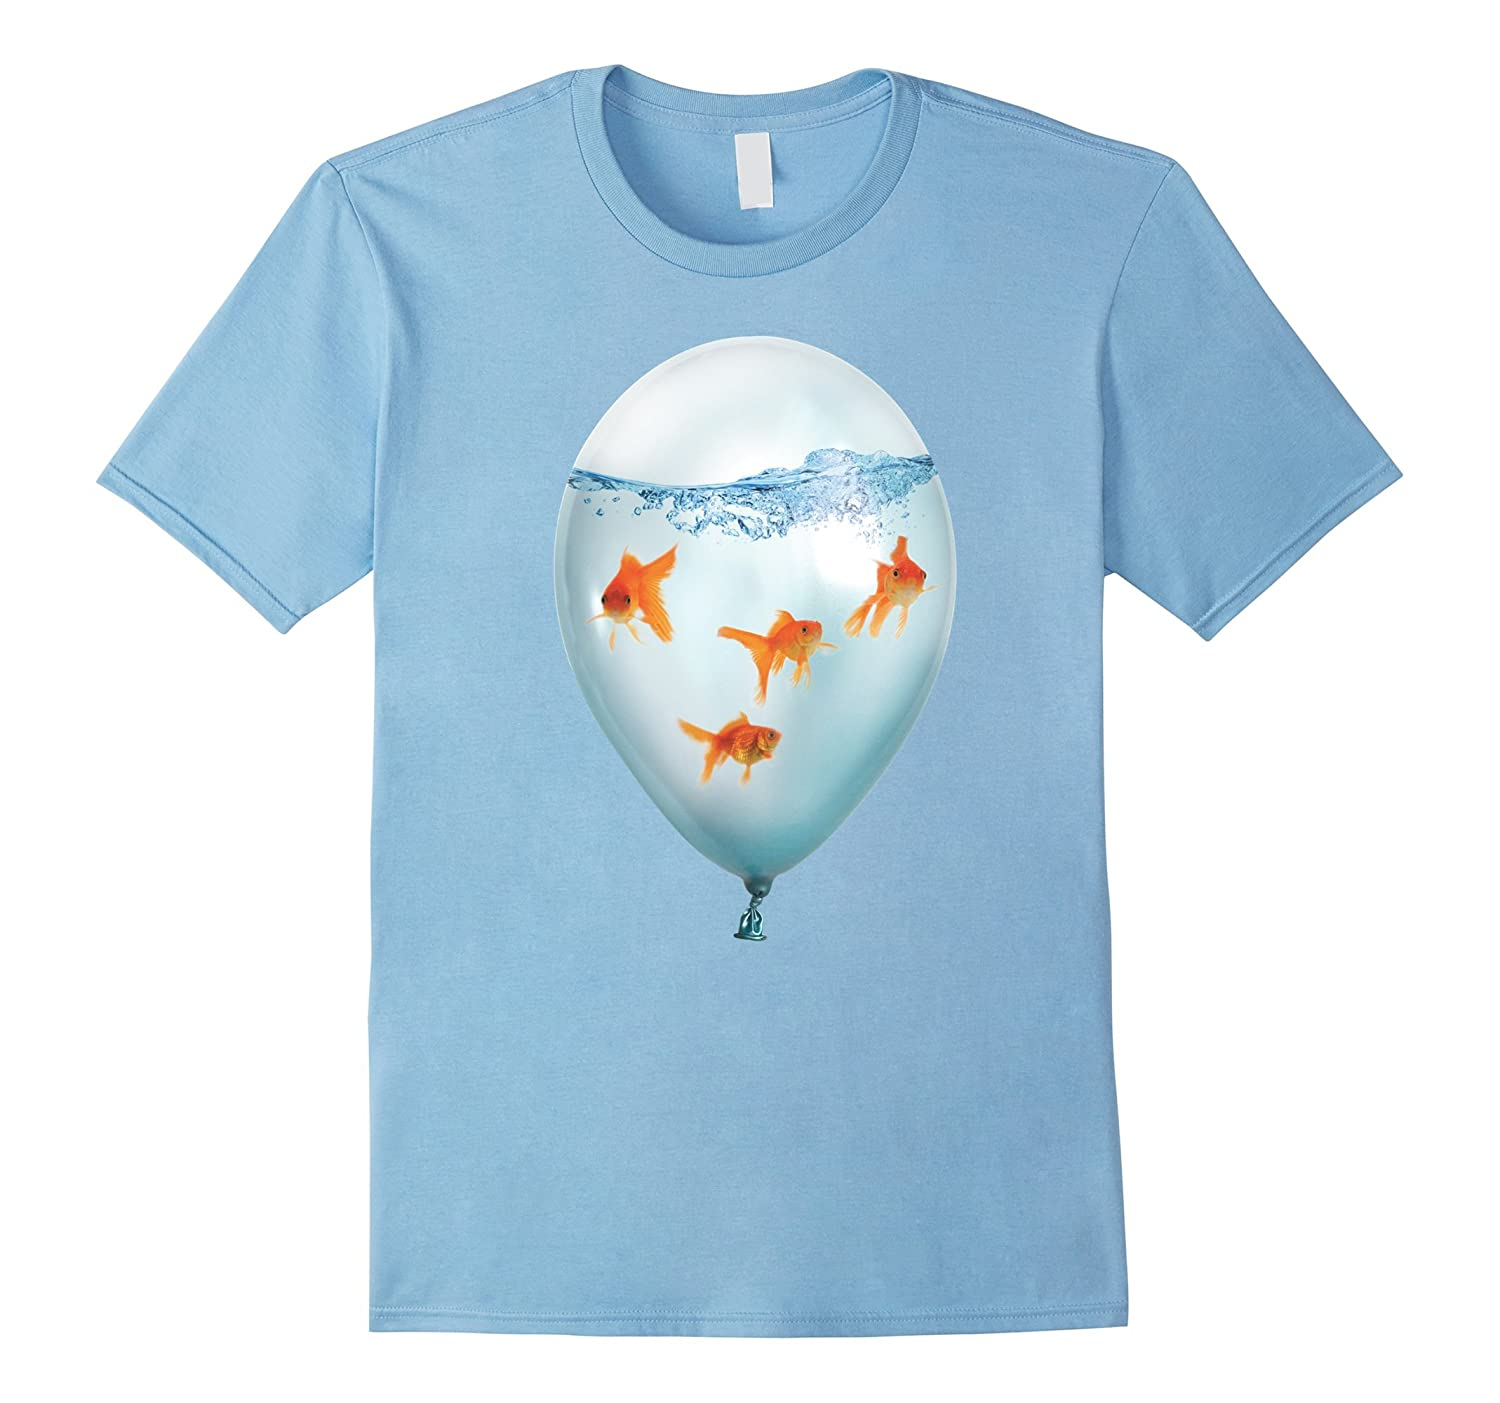 Goldfish Balloon T Shirt Bubbles Fishing By Zany Brainy Cl Colamaga